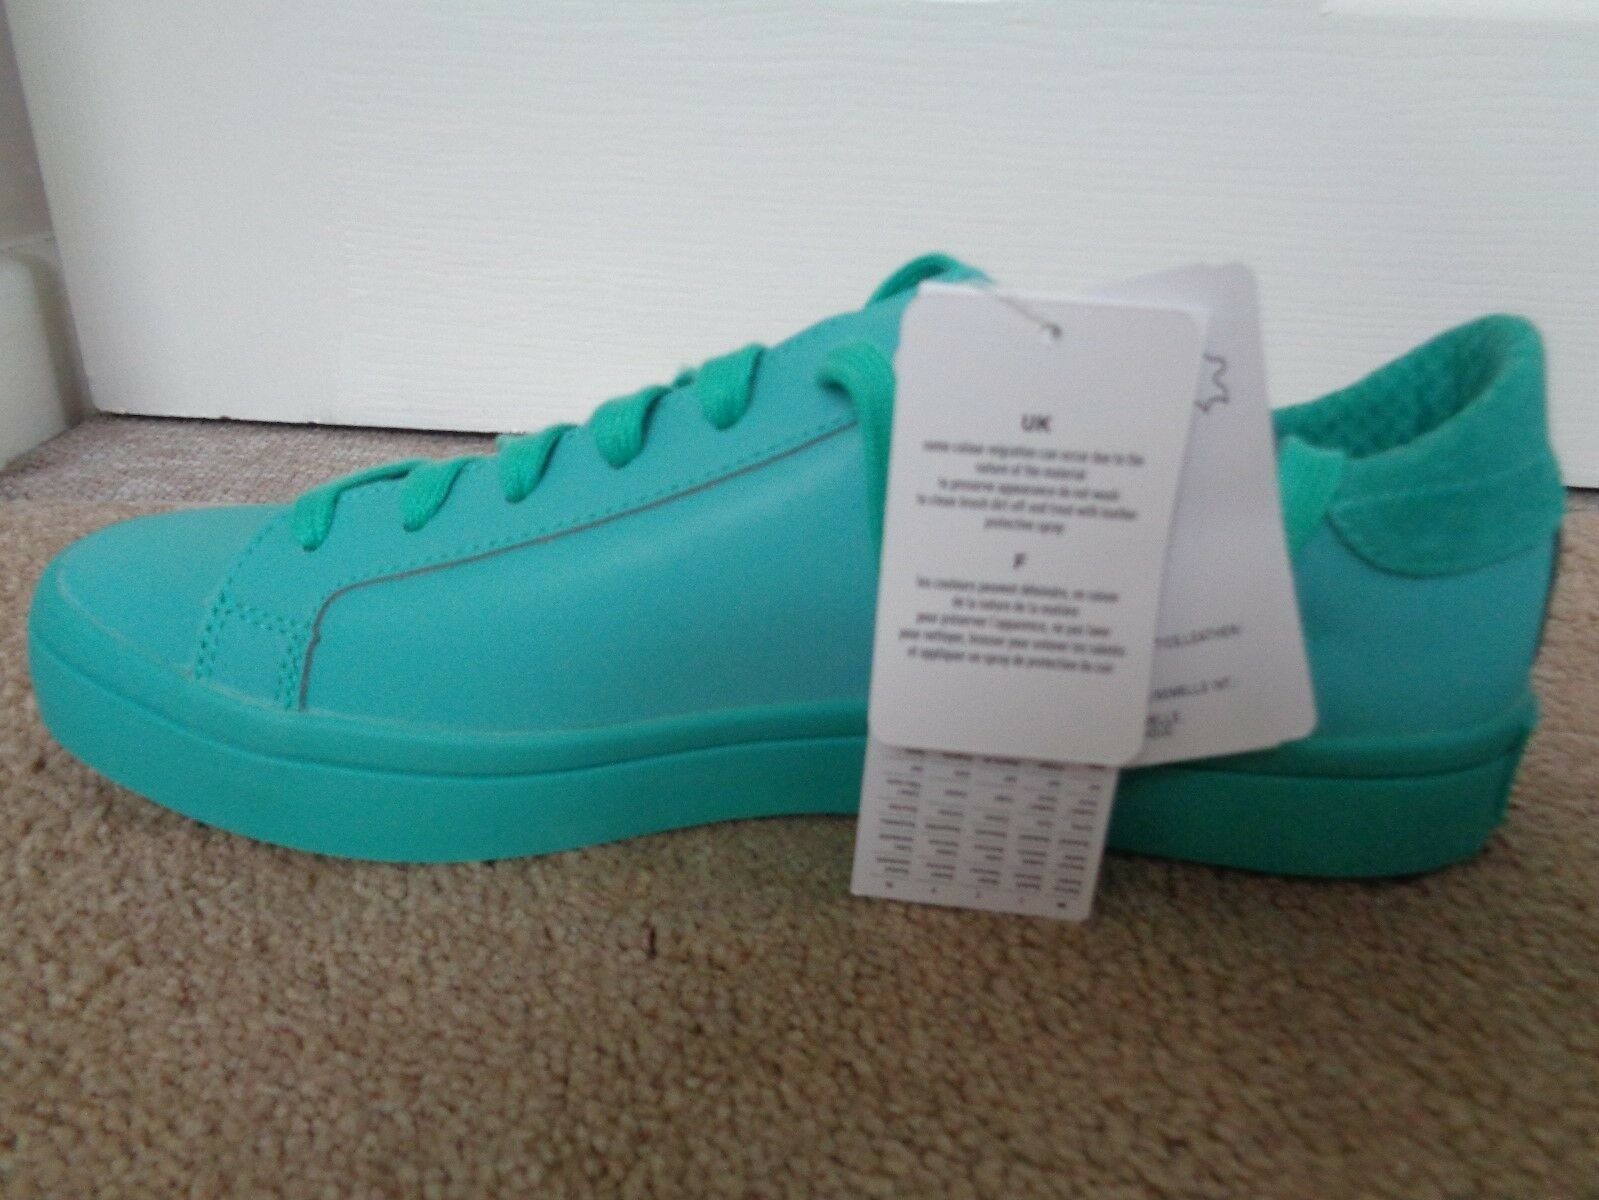 Adidas CourtVantage Adicolor trainers 42 S80256 uk 8 eu 42 trainers us 8.5 NEW IN BOX 6d4710